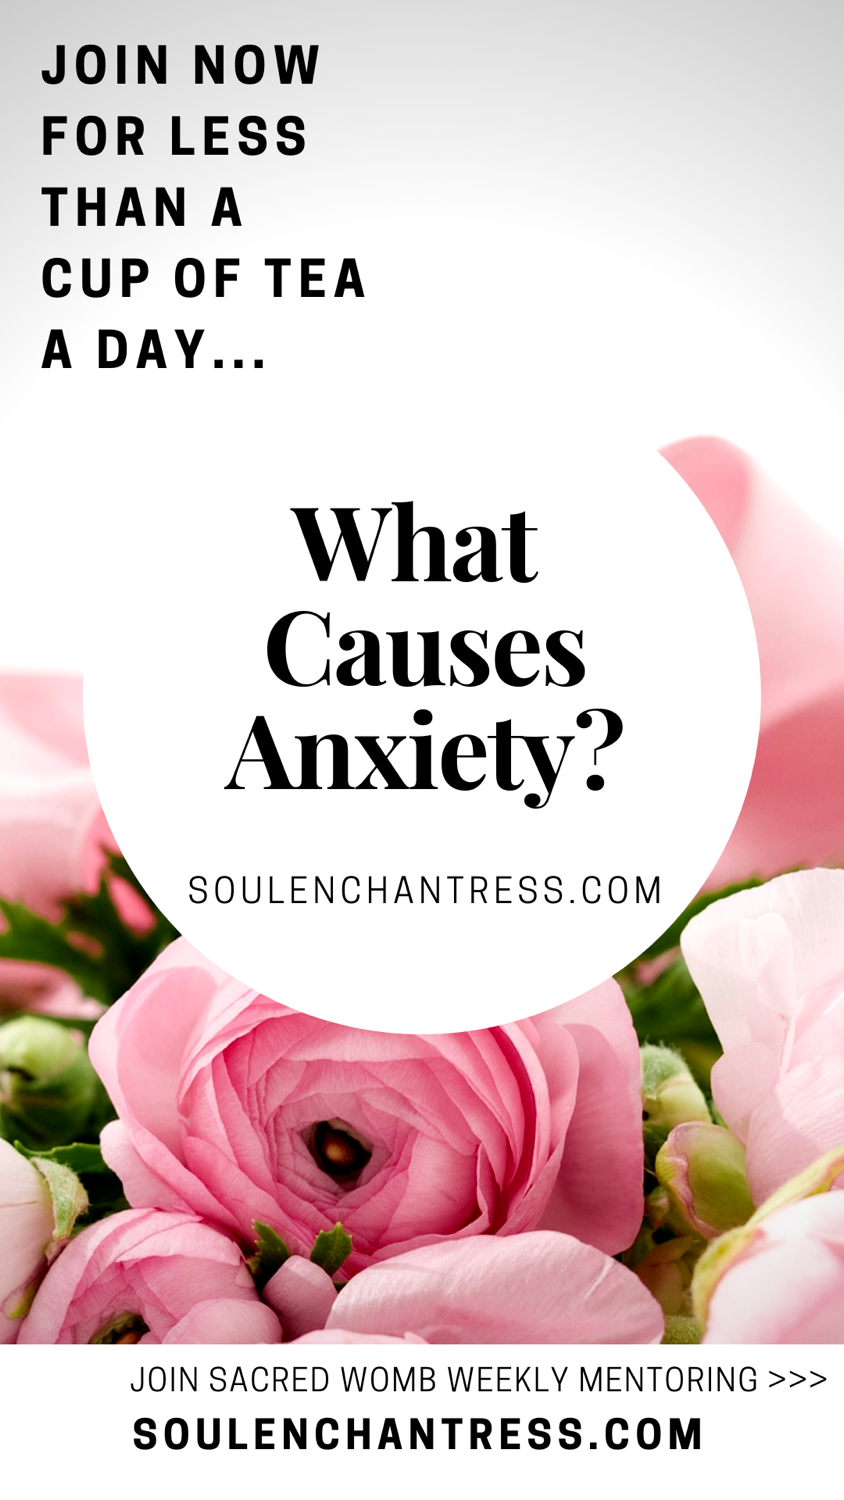 what causes anxiety, anxiety relief for introverts, soul enchantress, overcoming anxiety easily